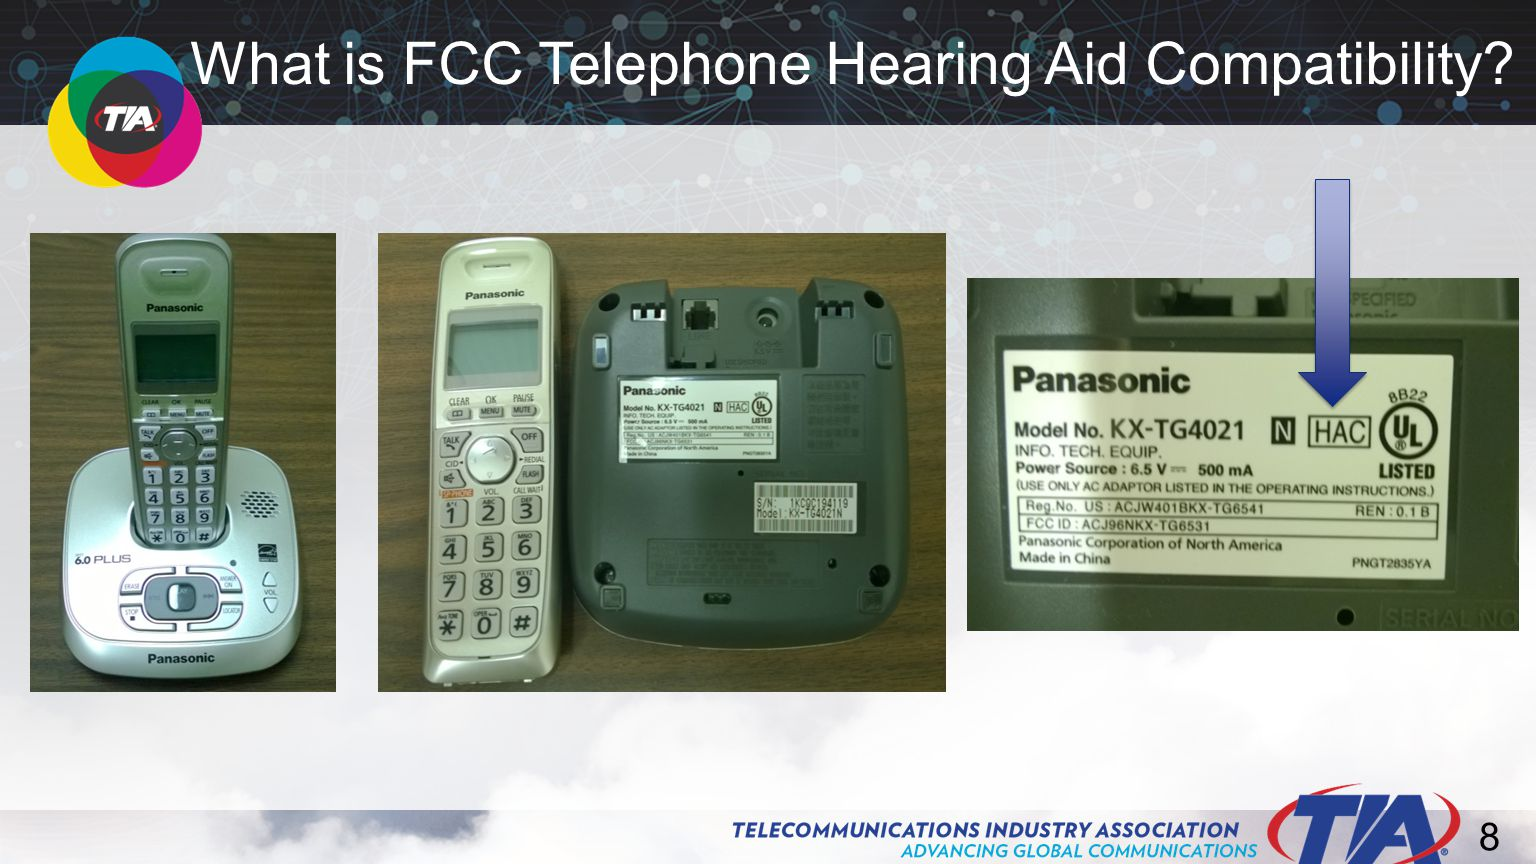 8 What is FCC Telephone Hearing Aid Compatibility?